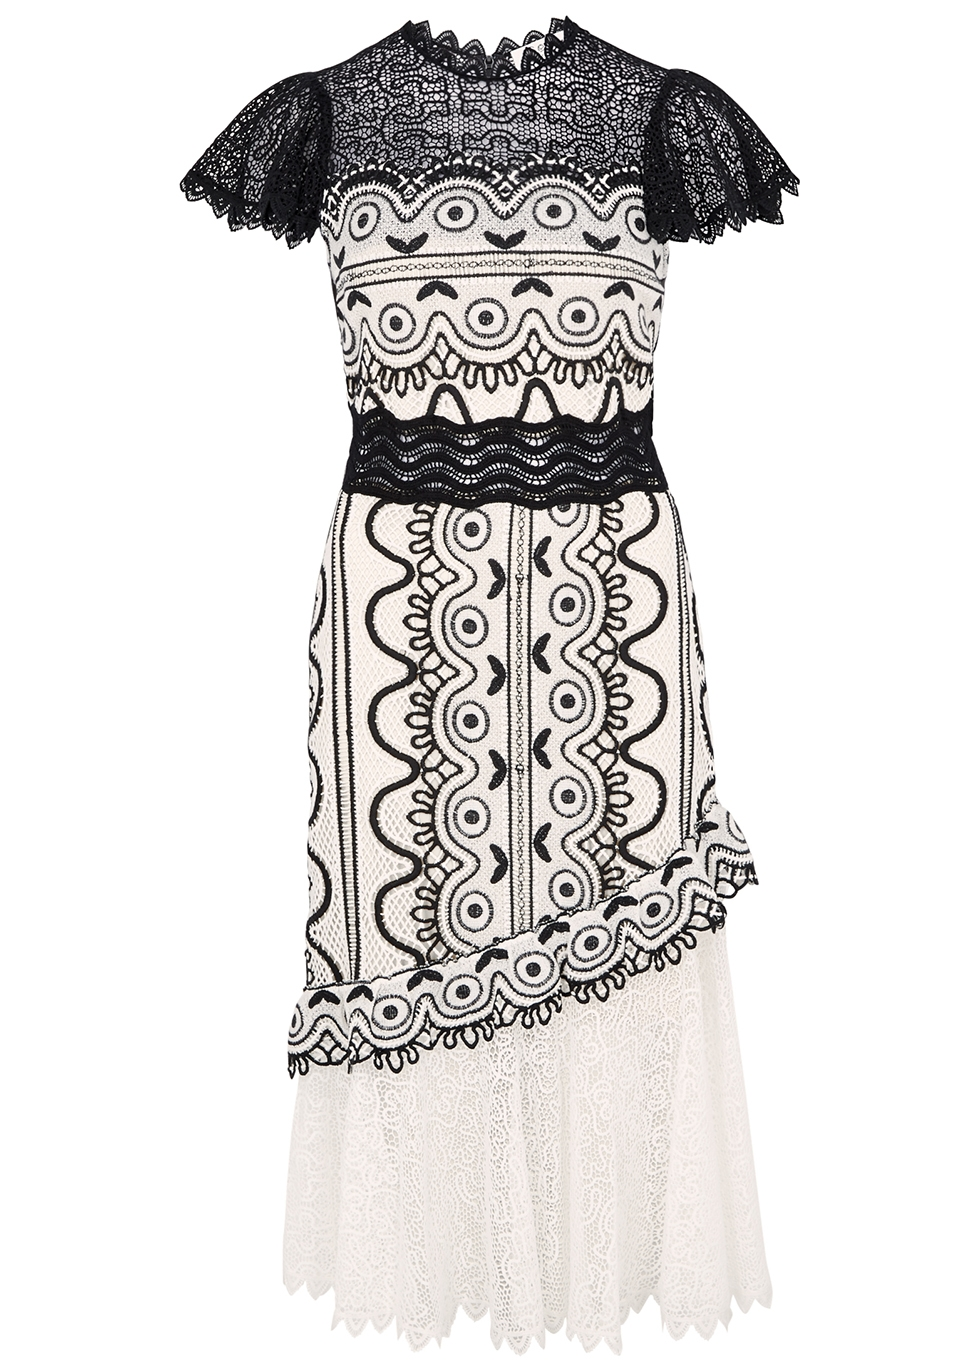 SEA NY Lola Monochrome Guipure Lace Dress in Black And White